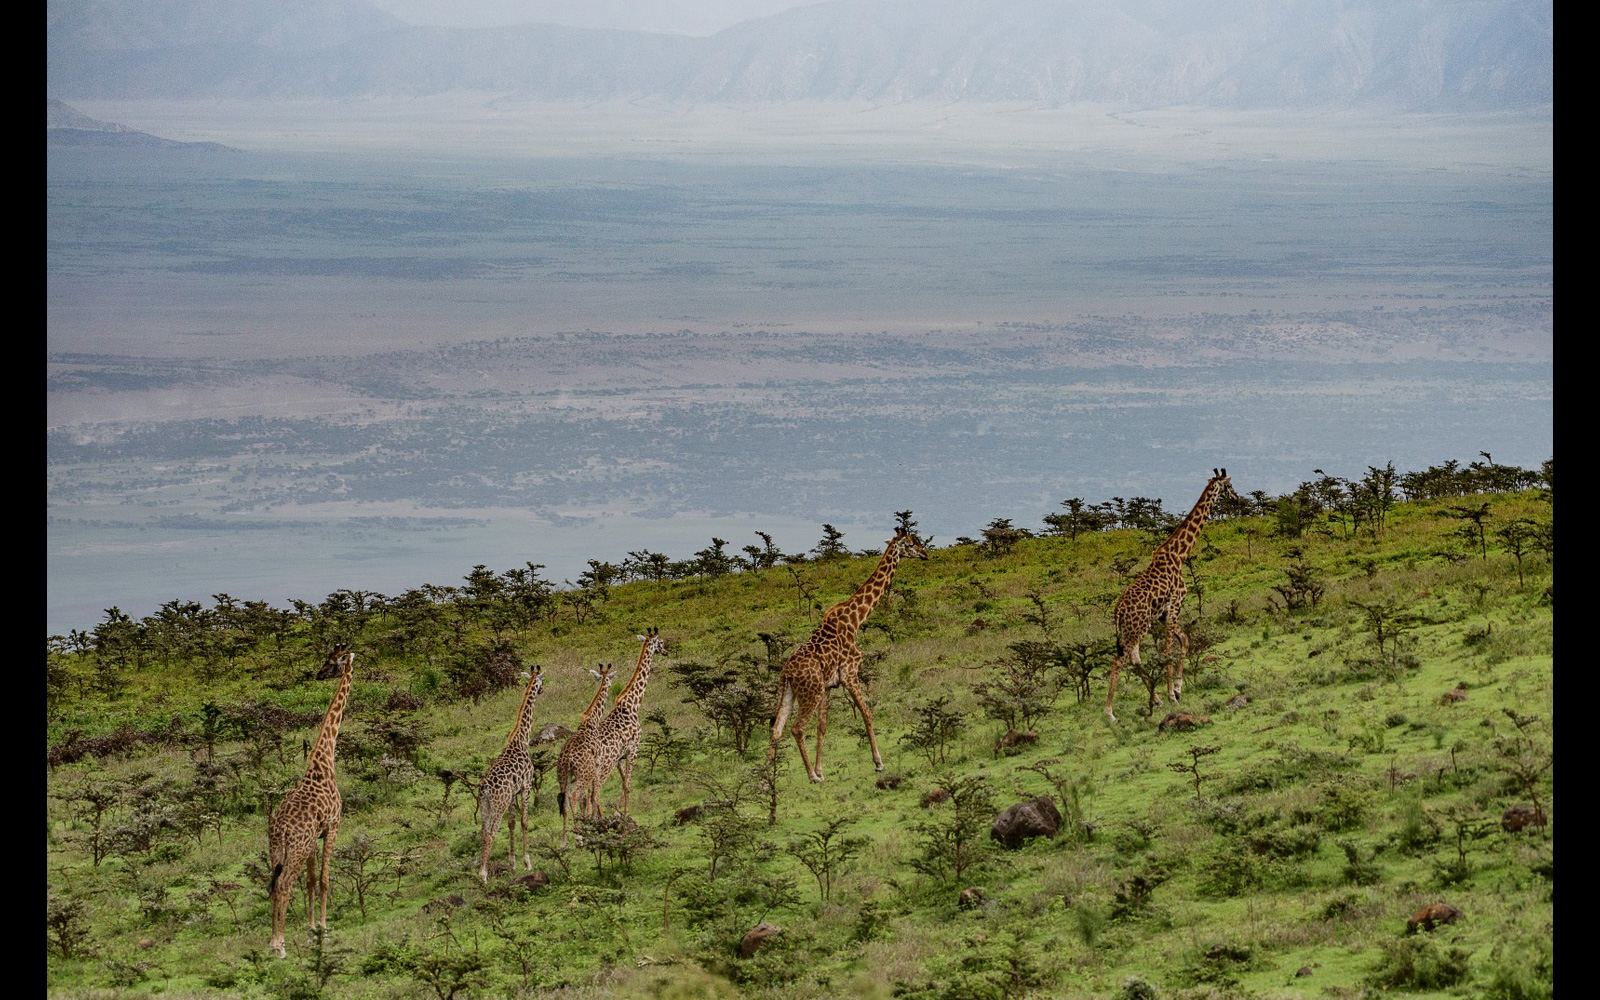 A giraffe family cross over the plains in the Ndutu area in the north-western part of the Ngorongoro Conservation area, Tanzania © Shmuel Goldberg